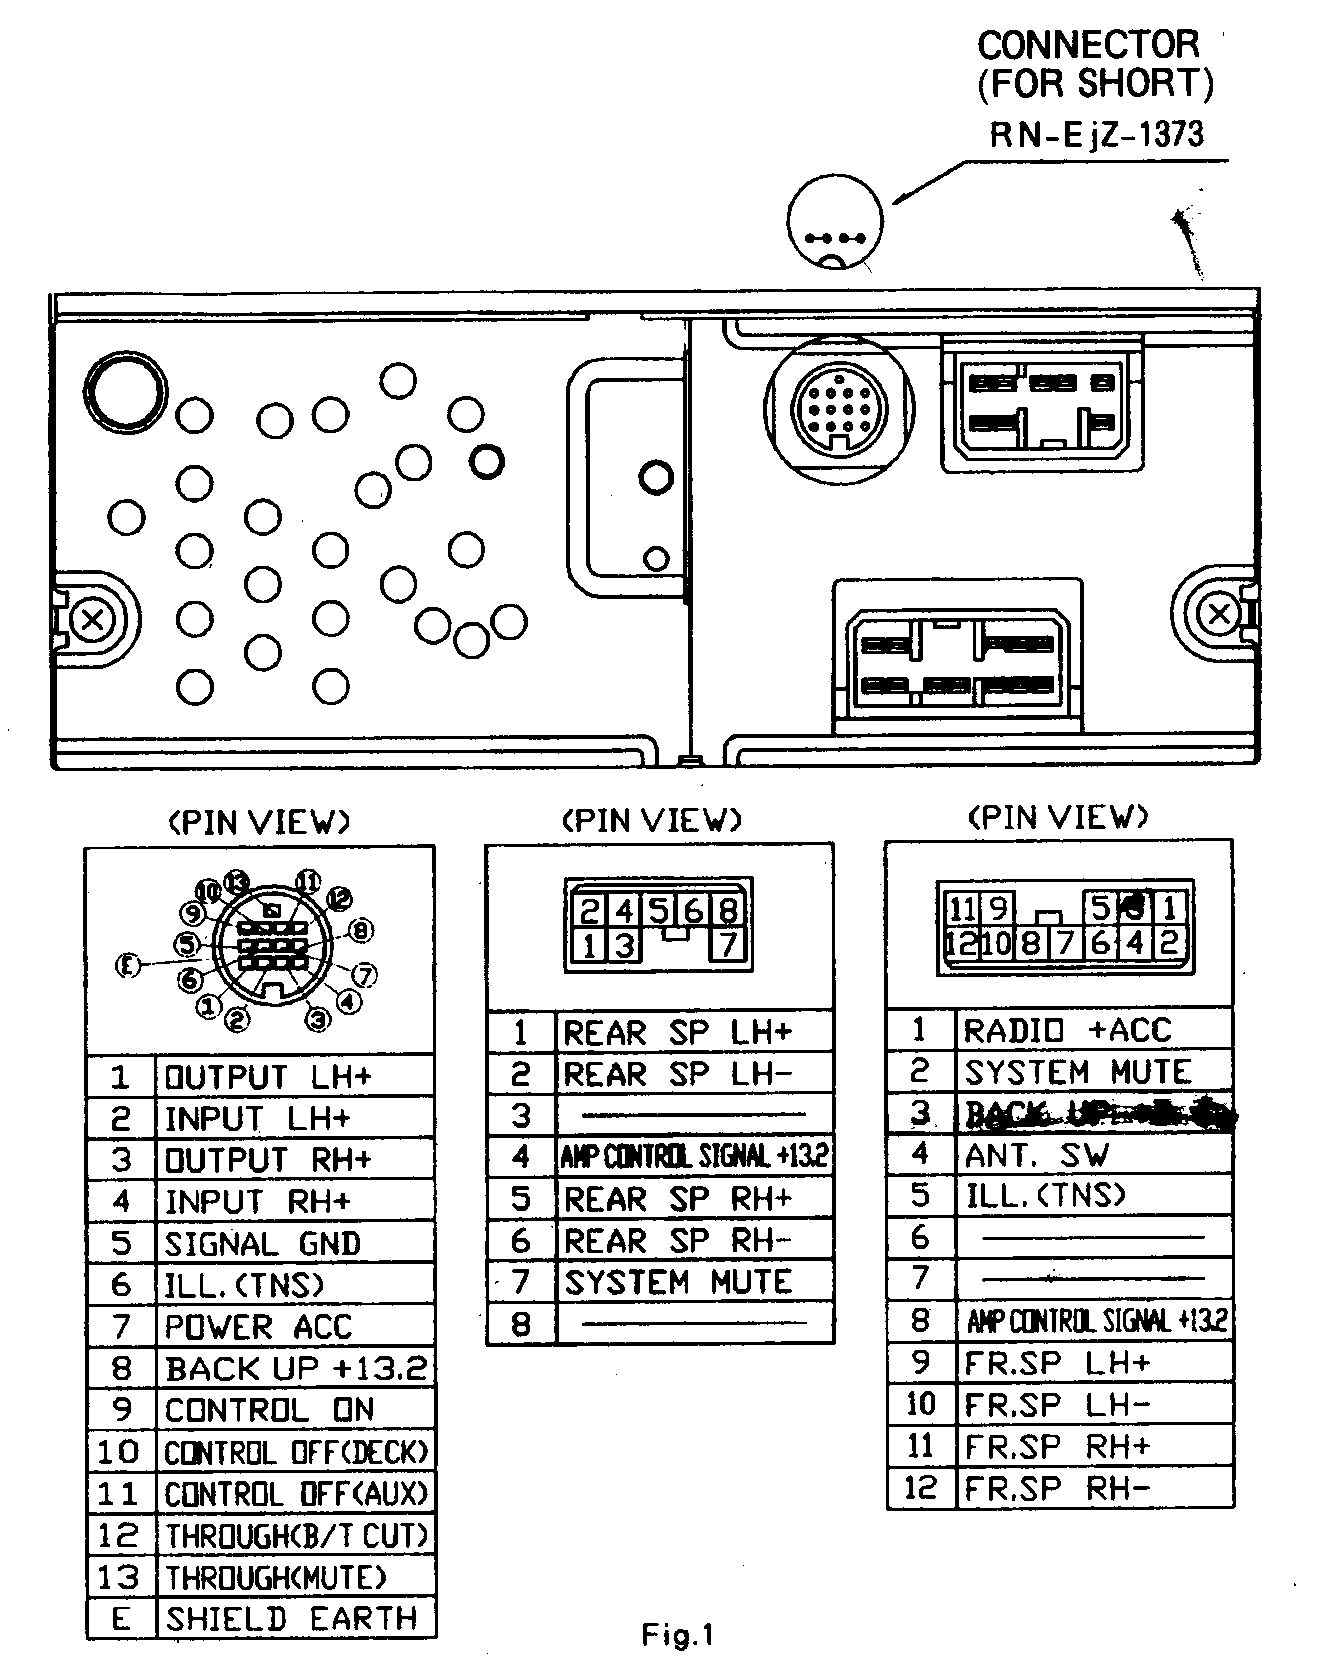 [DIAGRAM] I Am Trying To Install An Aftermarket Stereo In